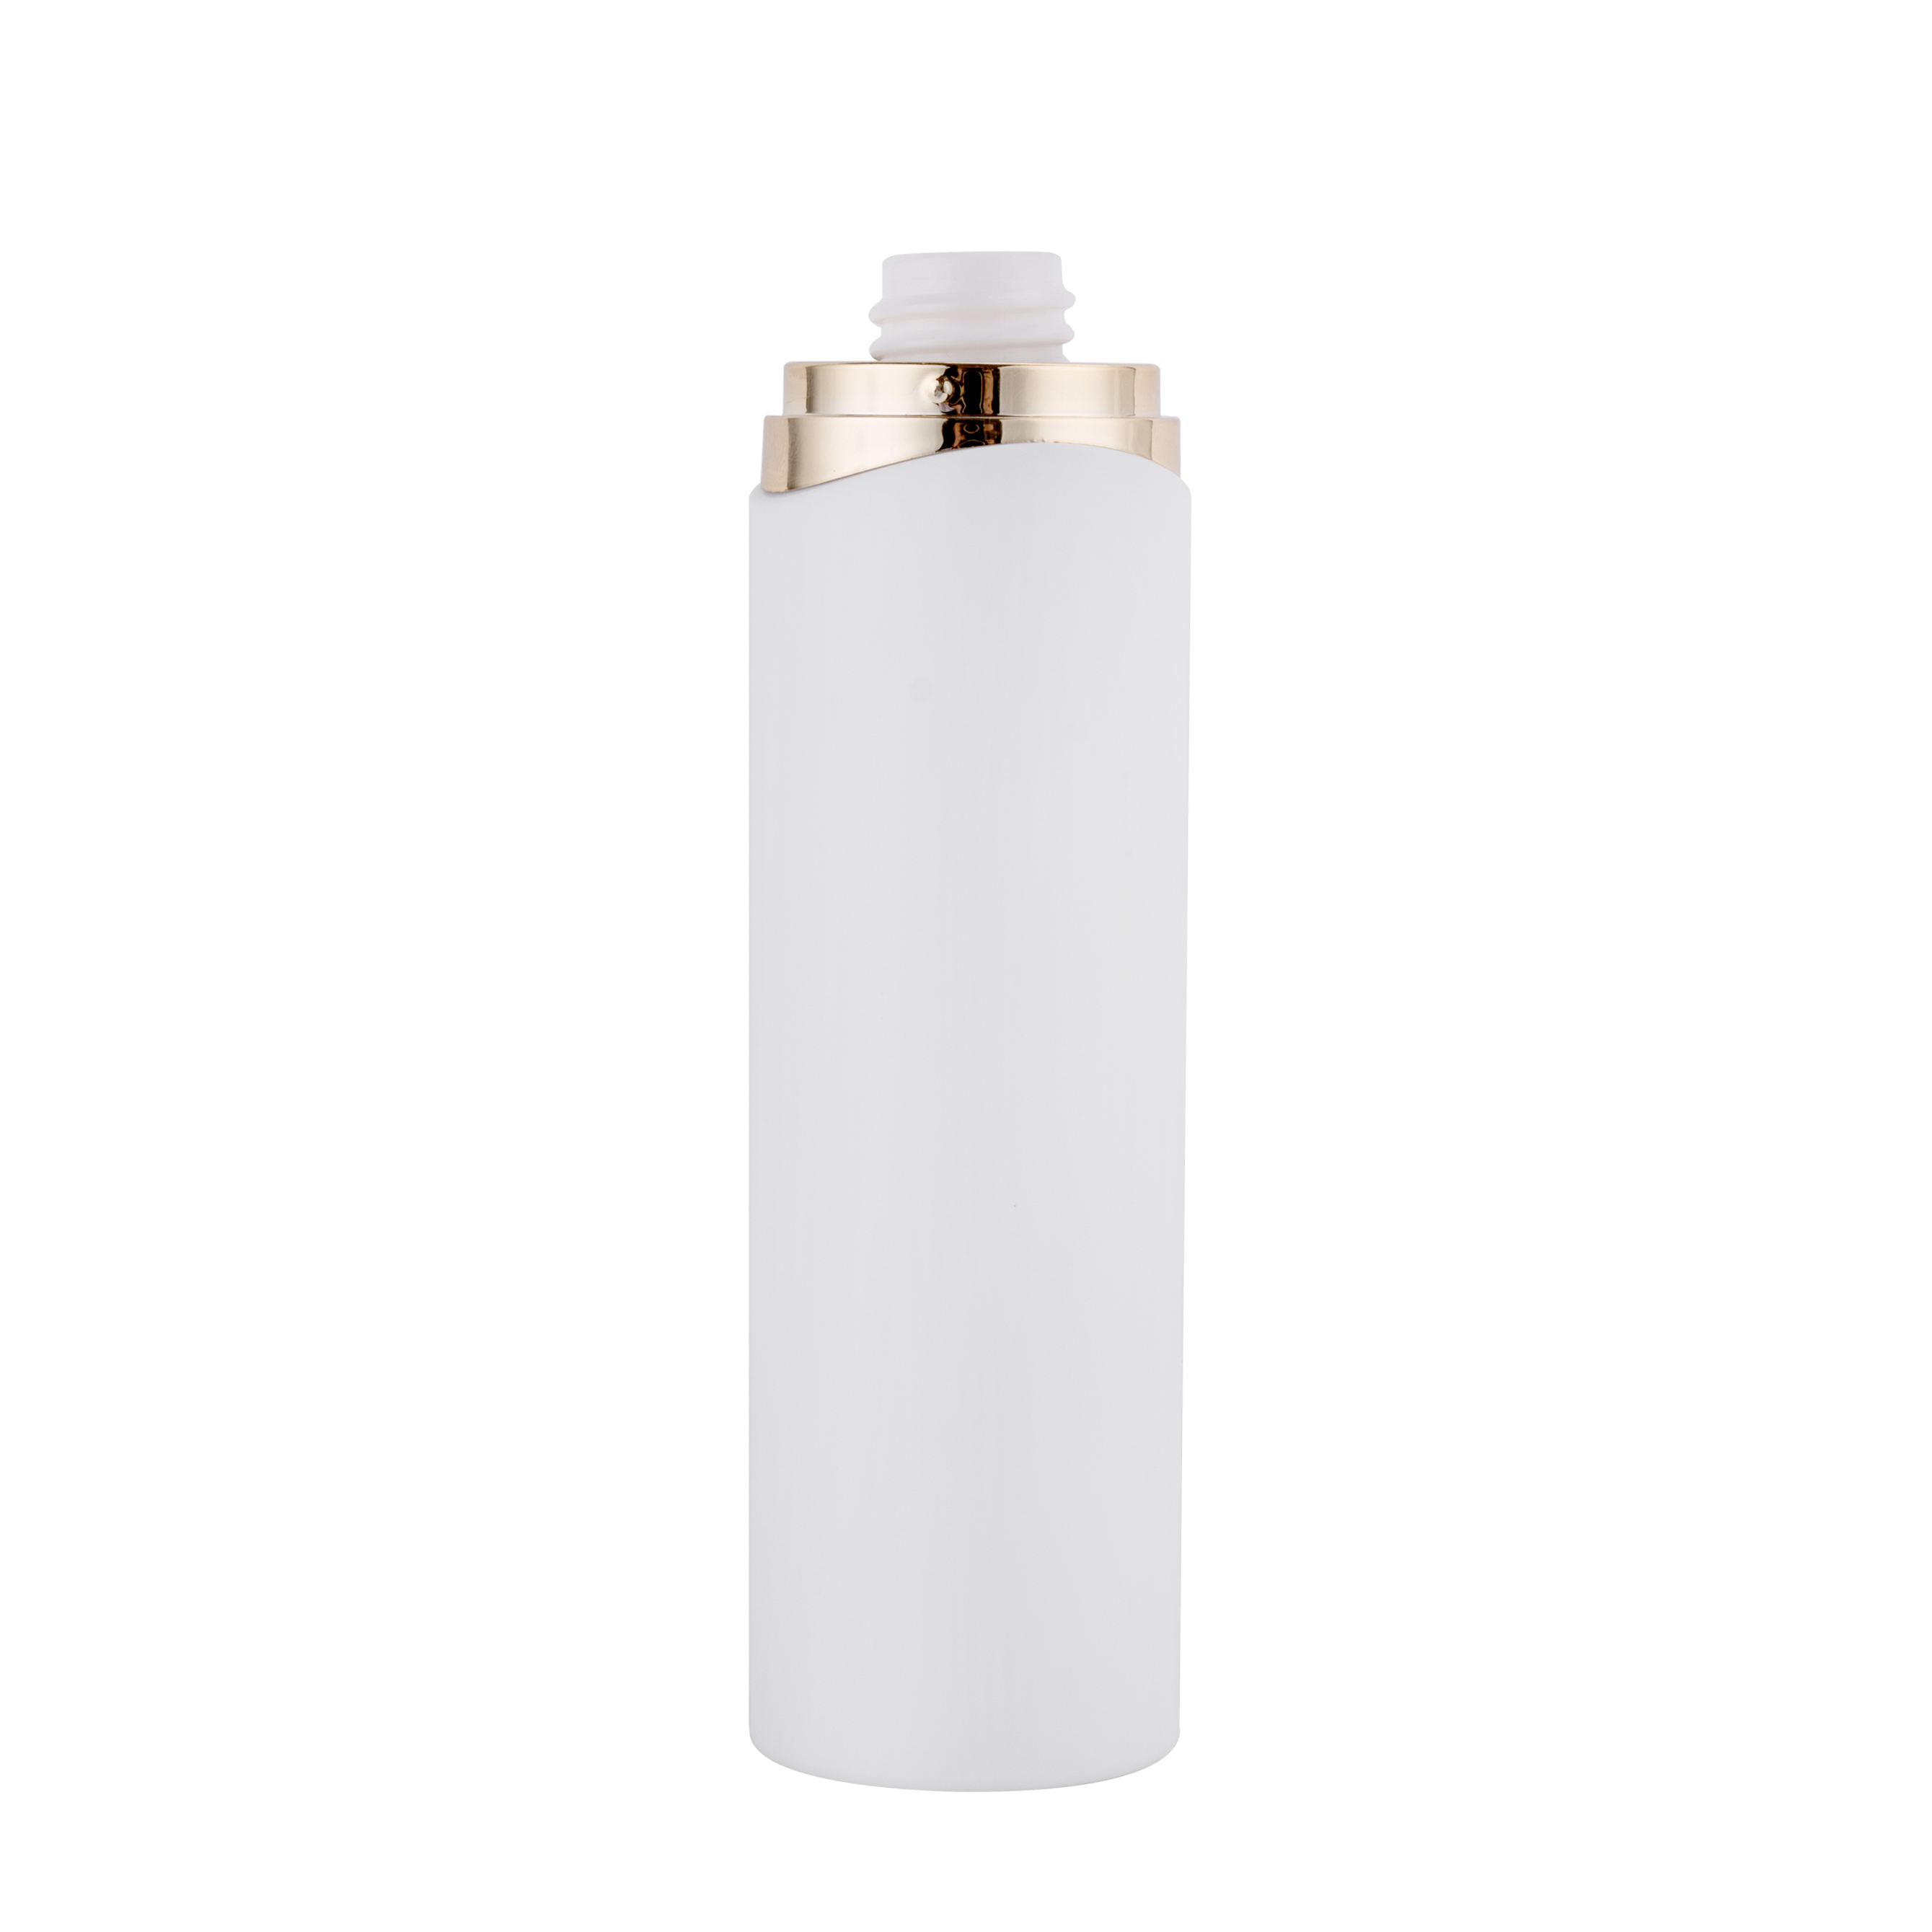 30ml 50ml Small Atomize Cylinder Lotion Pump Bottle